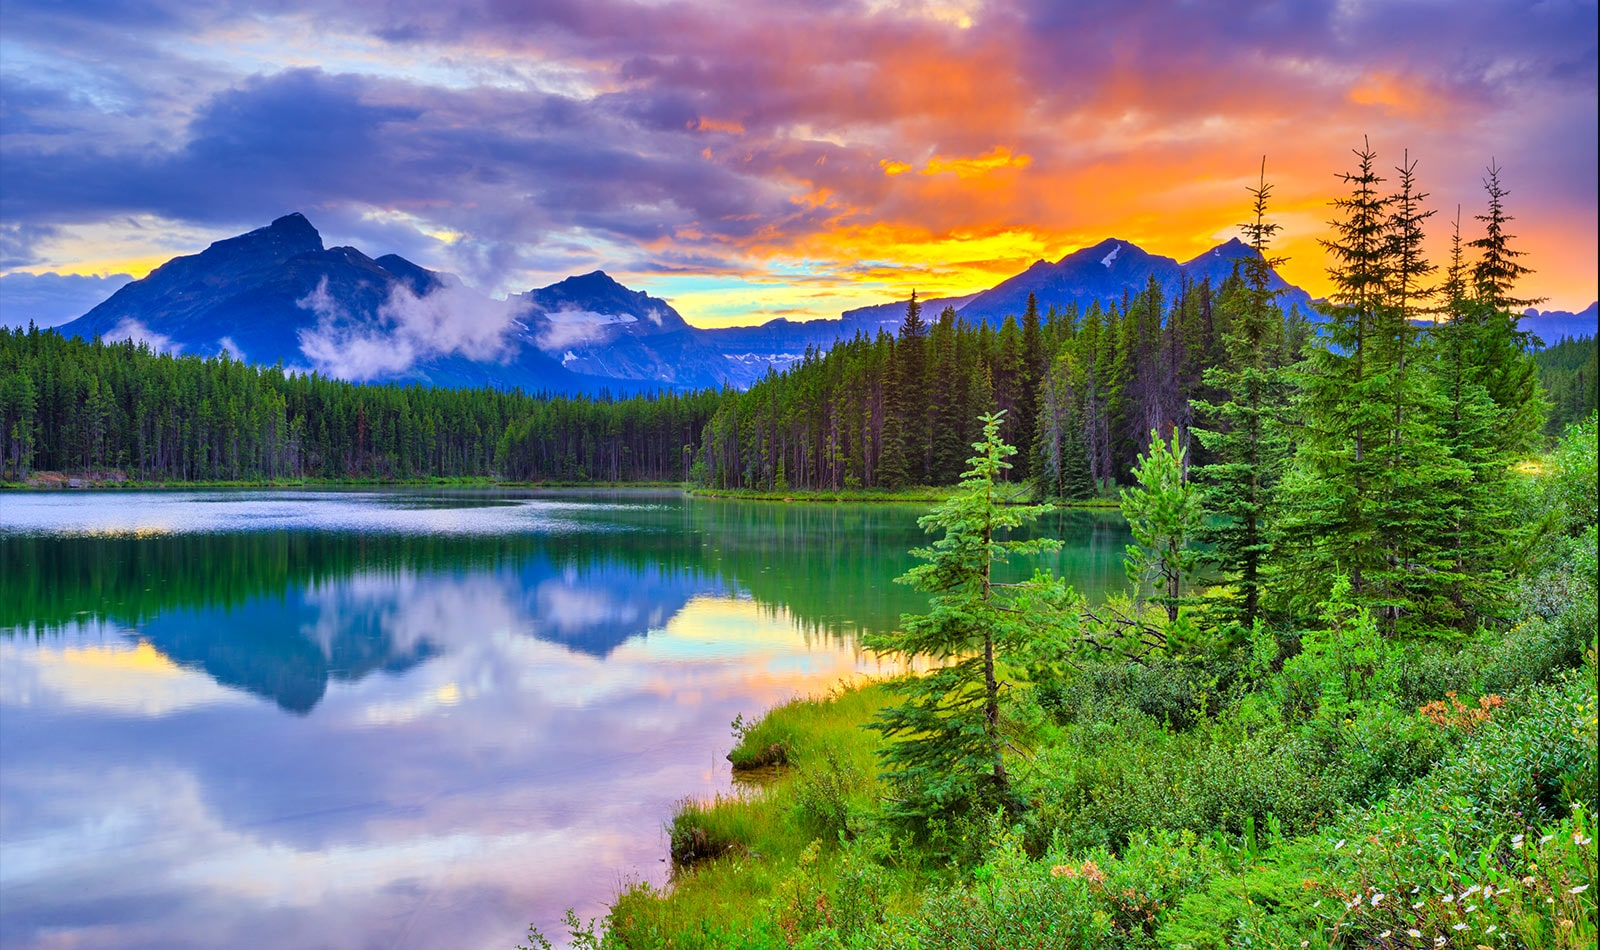 This card describes the picture quality. It is an image of a colorful sunset in a lake surrounded by forests.